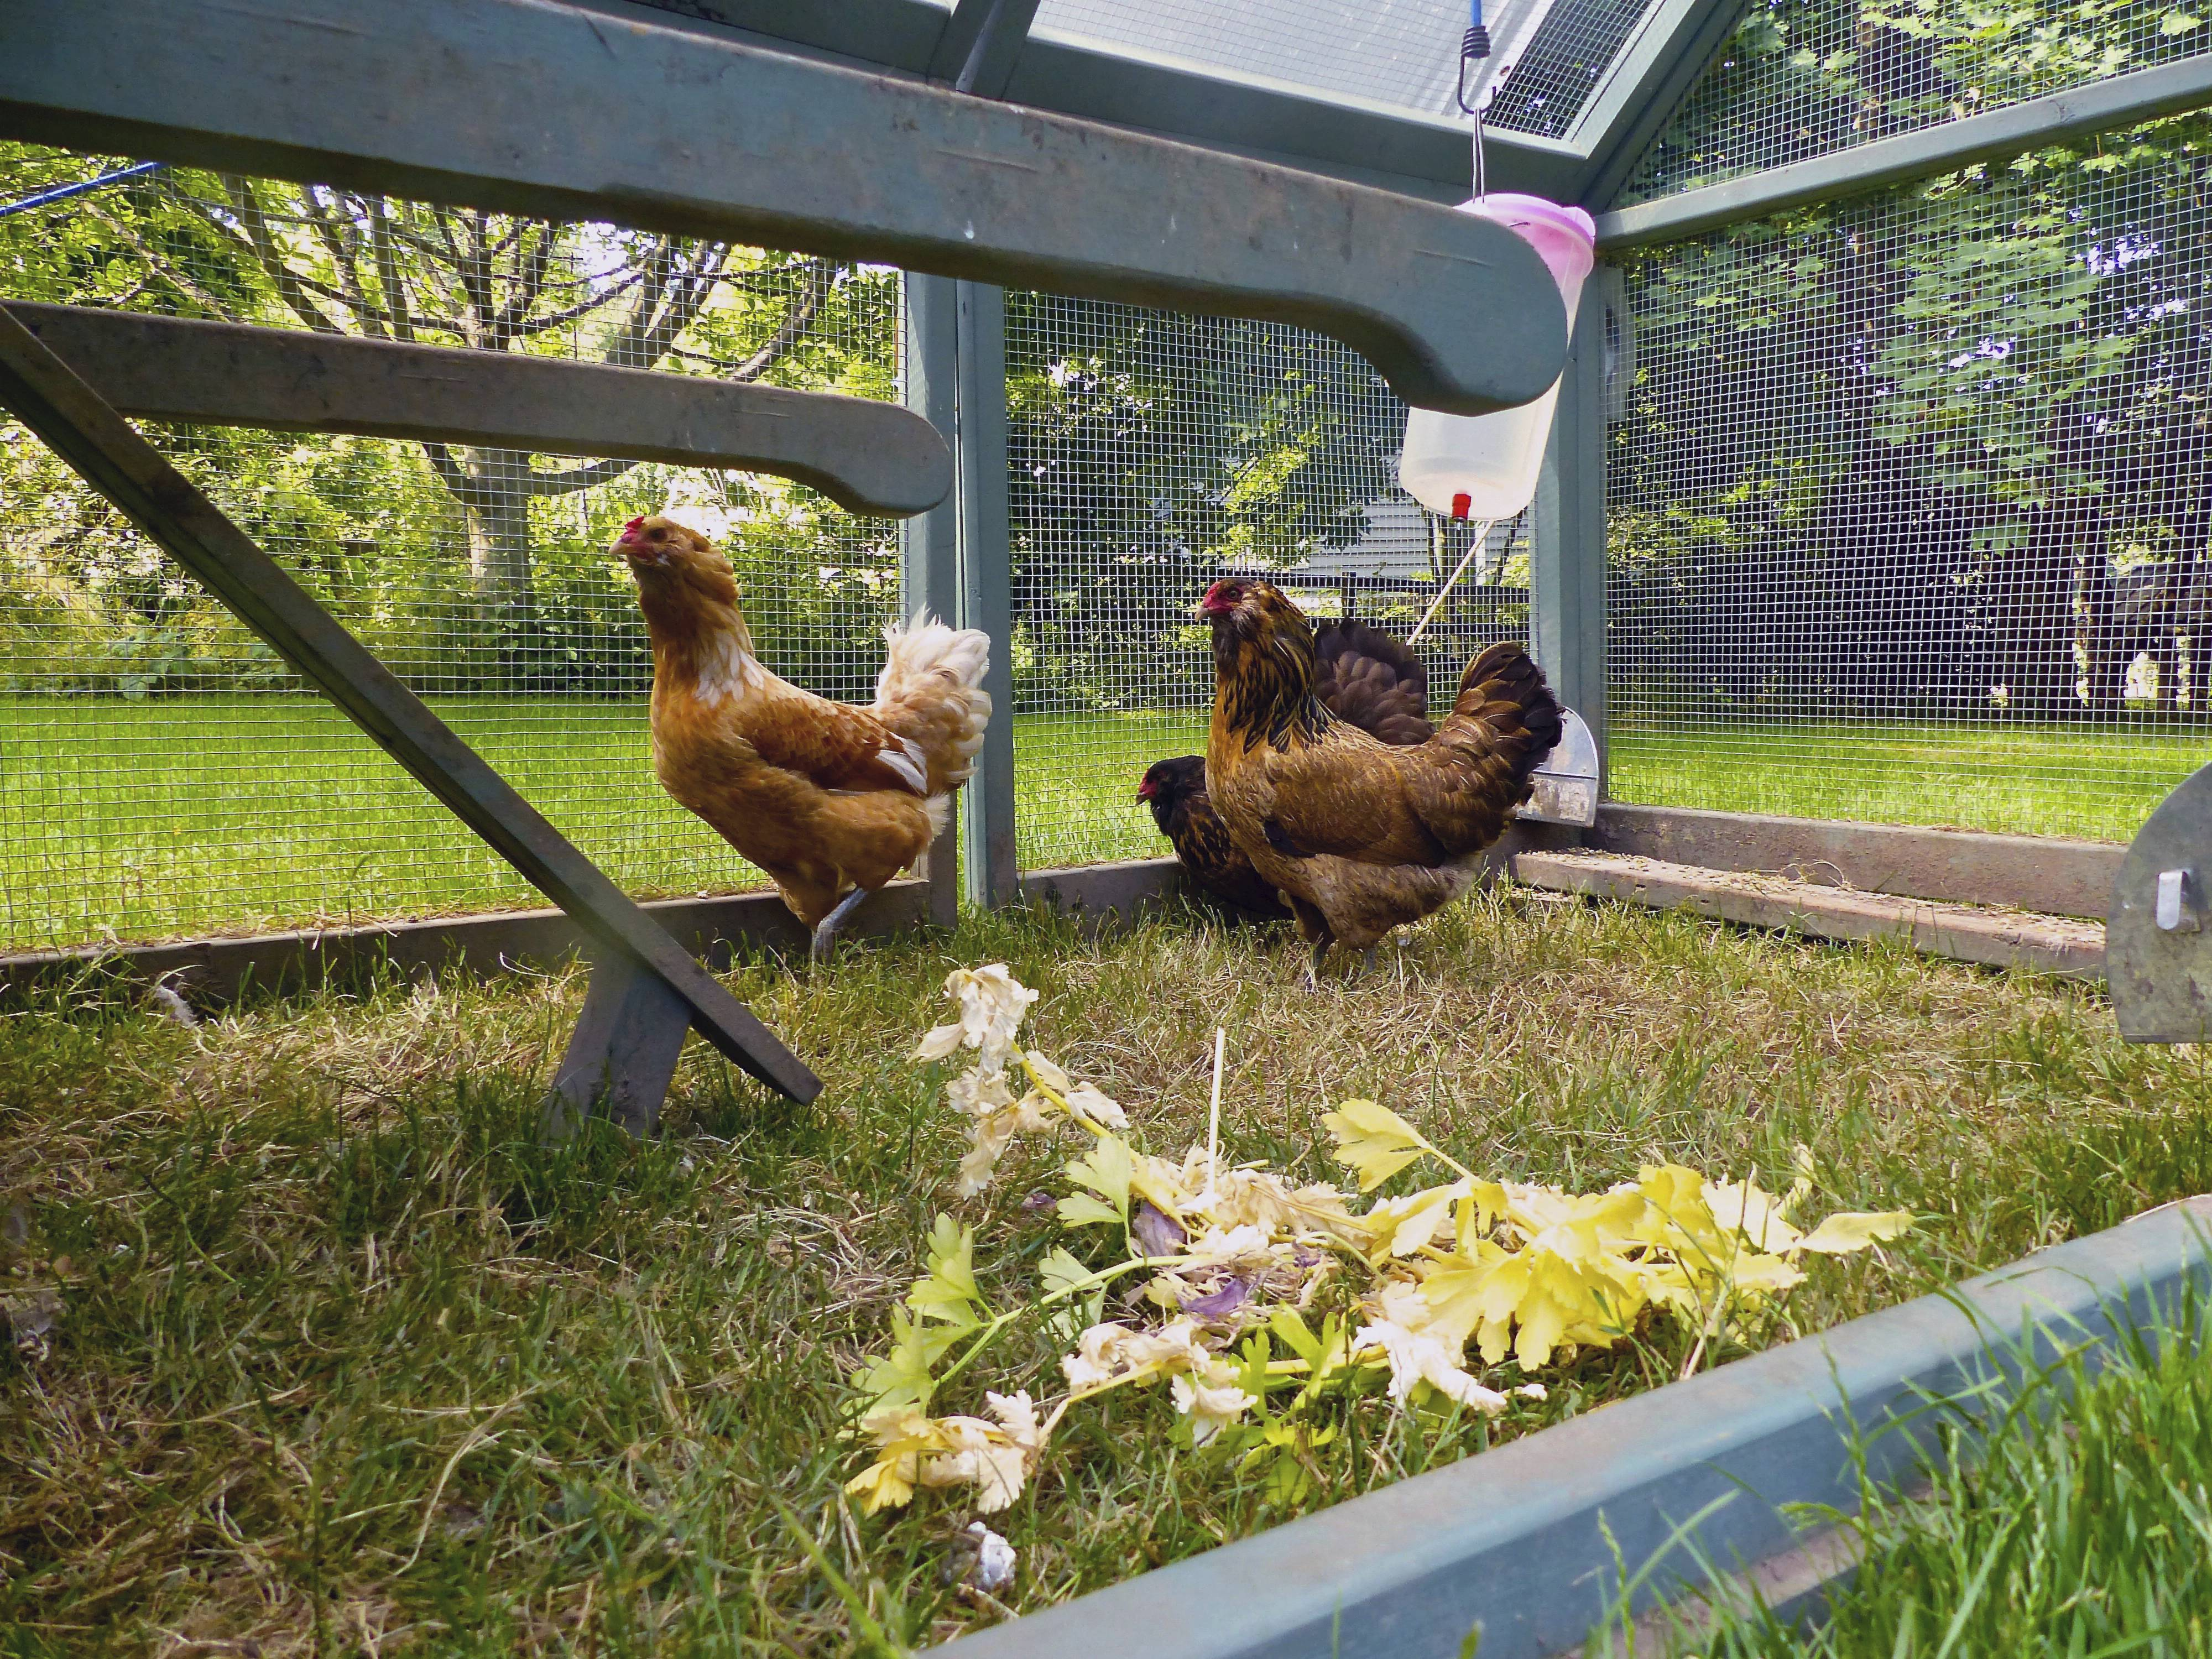 Sugar Grove gives OK for backyard chickens on trial basis